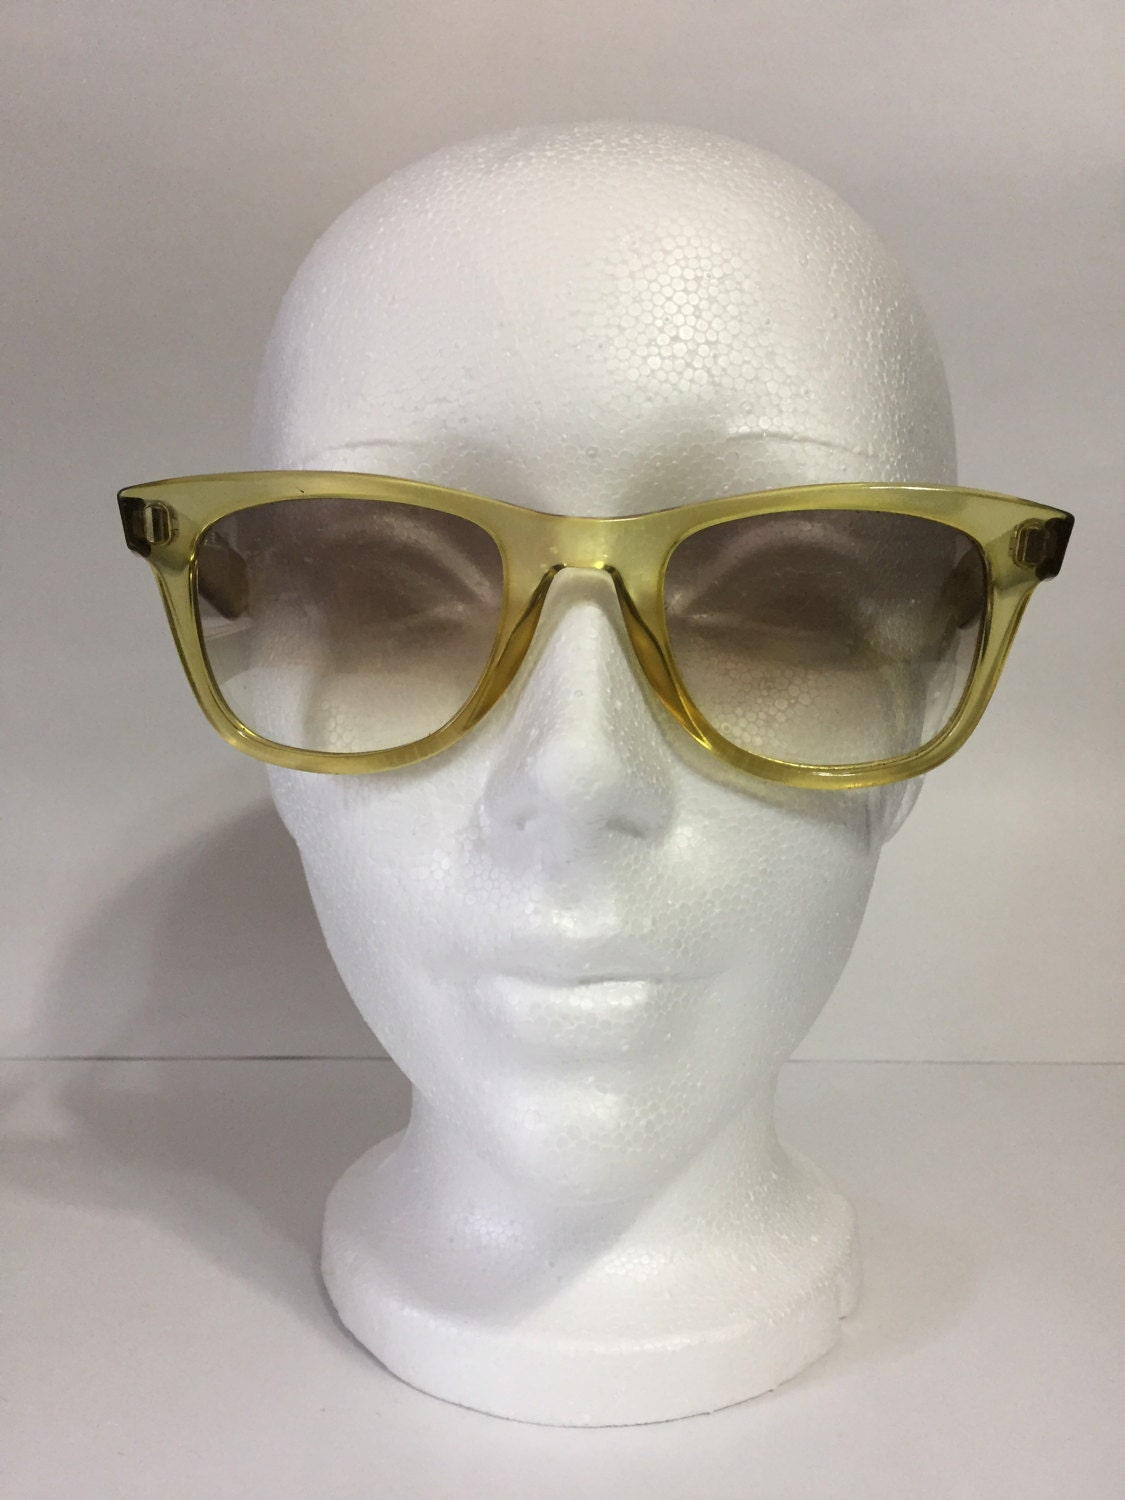 Esprit Sunglasses Vintage 7003 Vintage Sunglasses Yellow